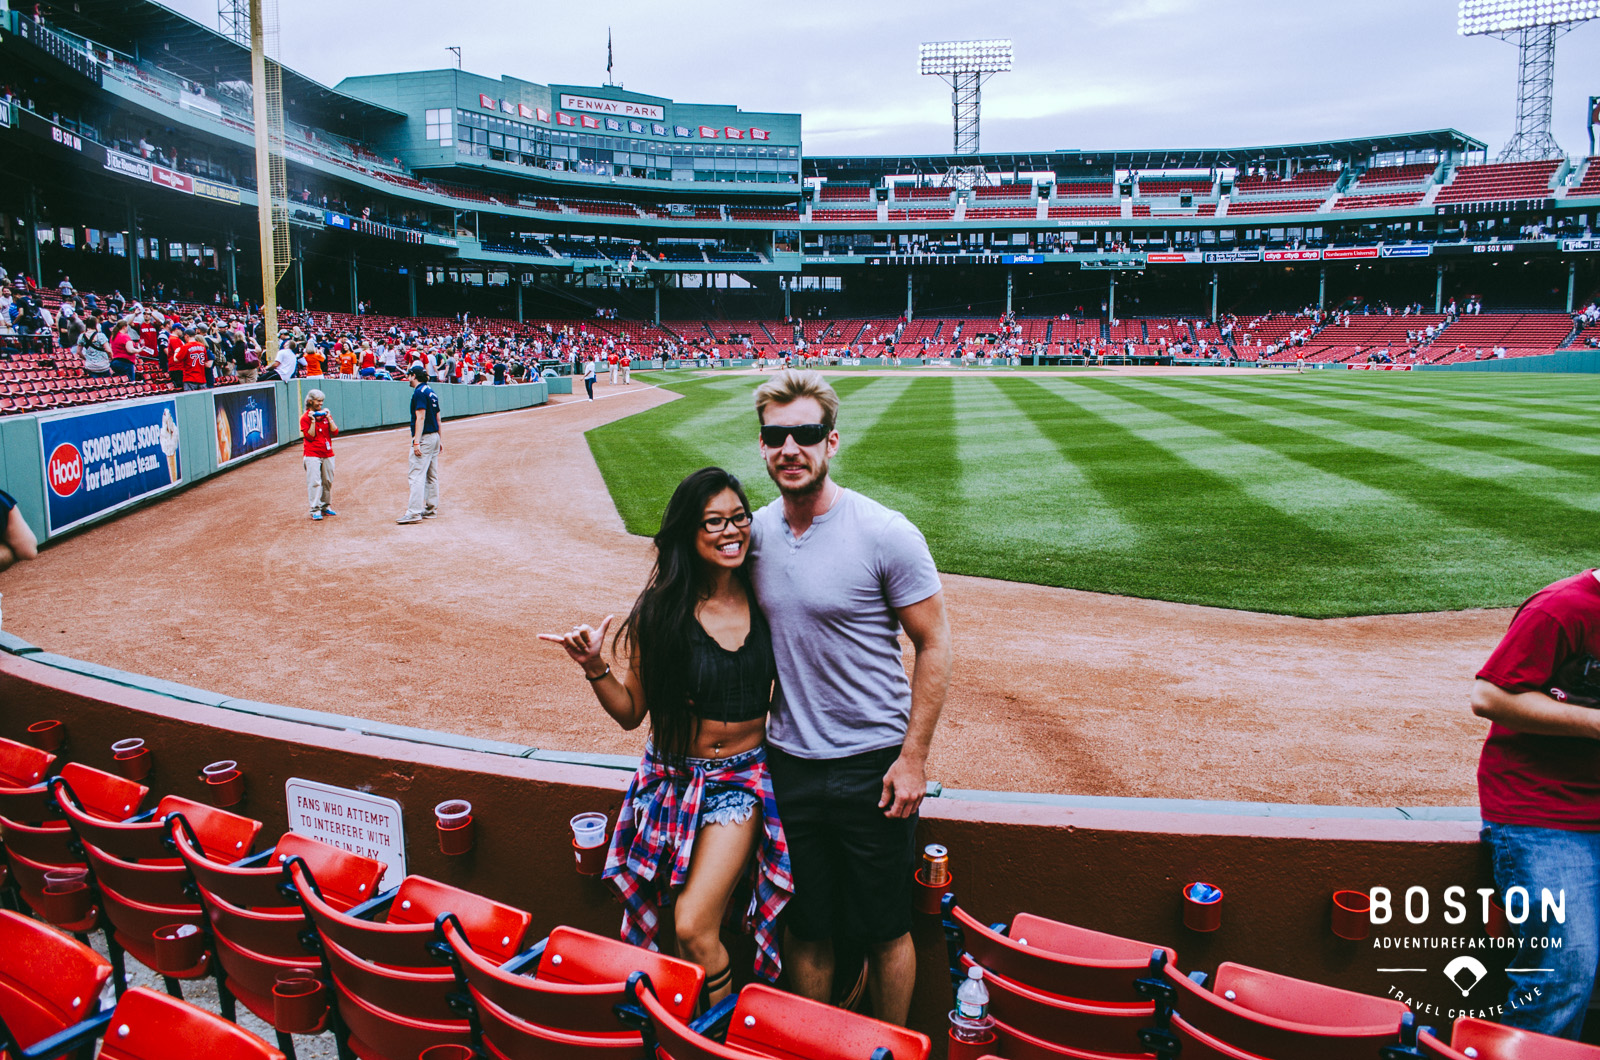 4th of July game at the Fenway Park